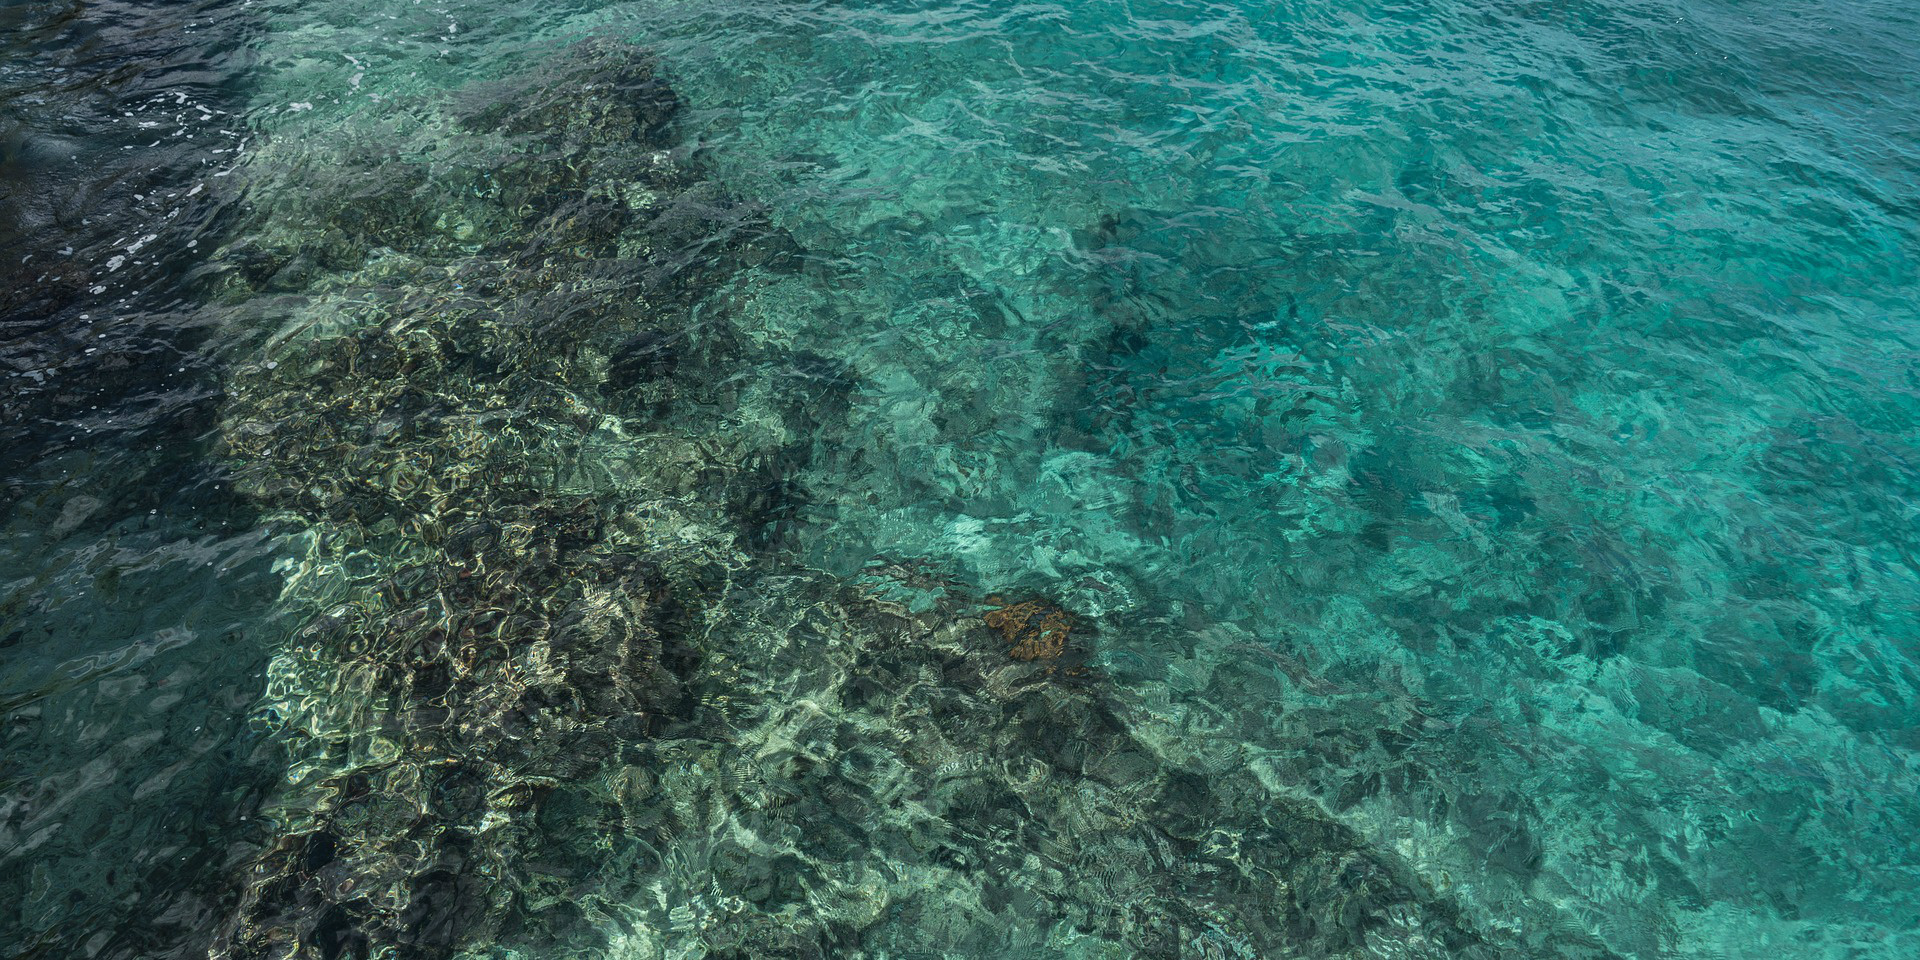 Volunteers in Mexico work to conserve coral reefs in the region.